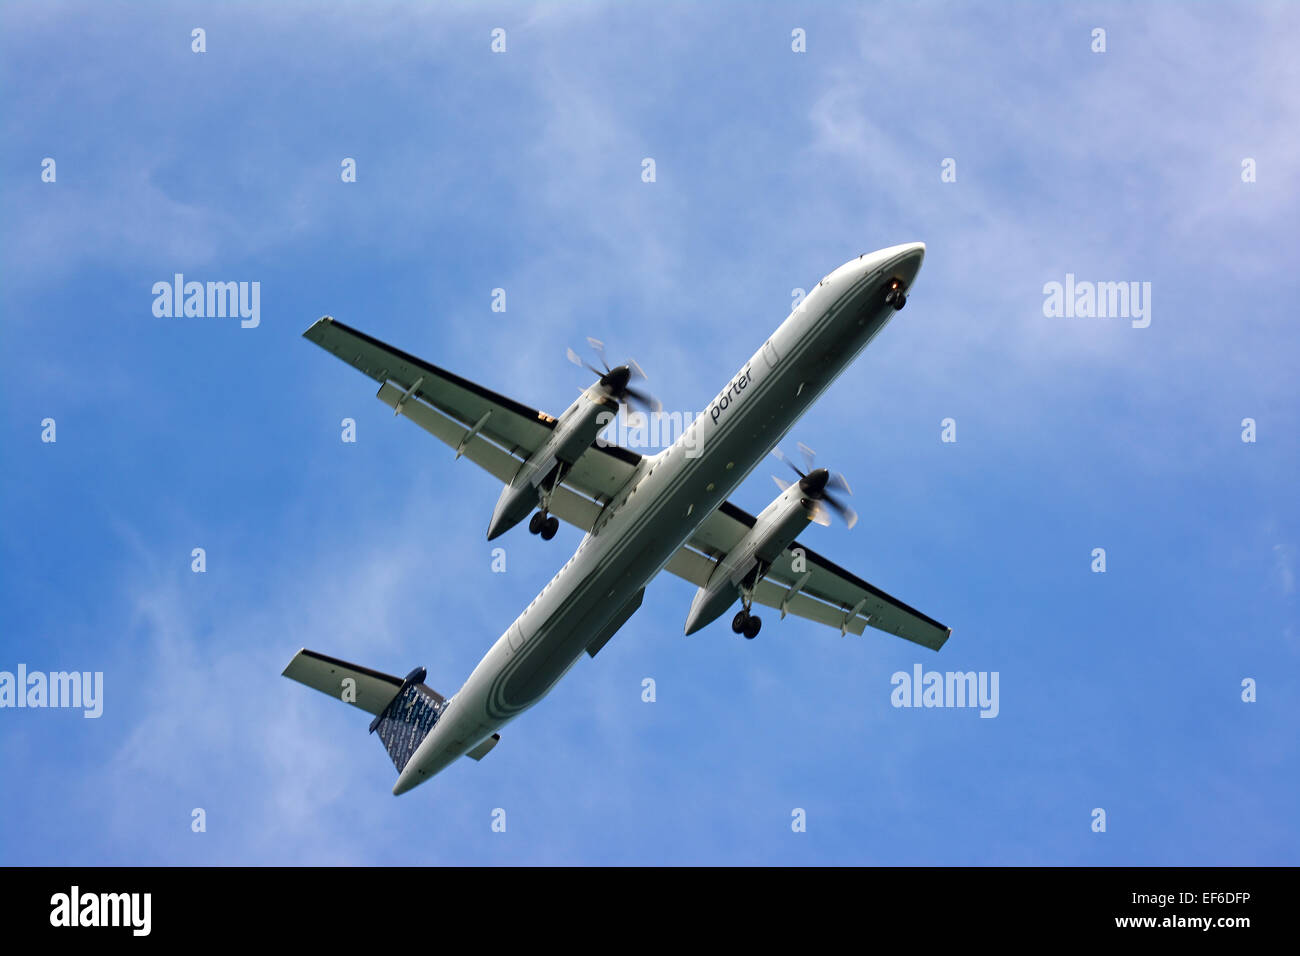 Porter airline airplane - Stock Image